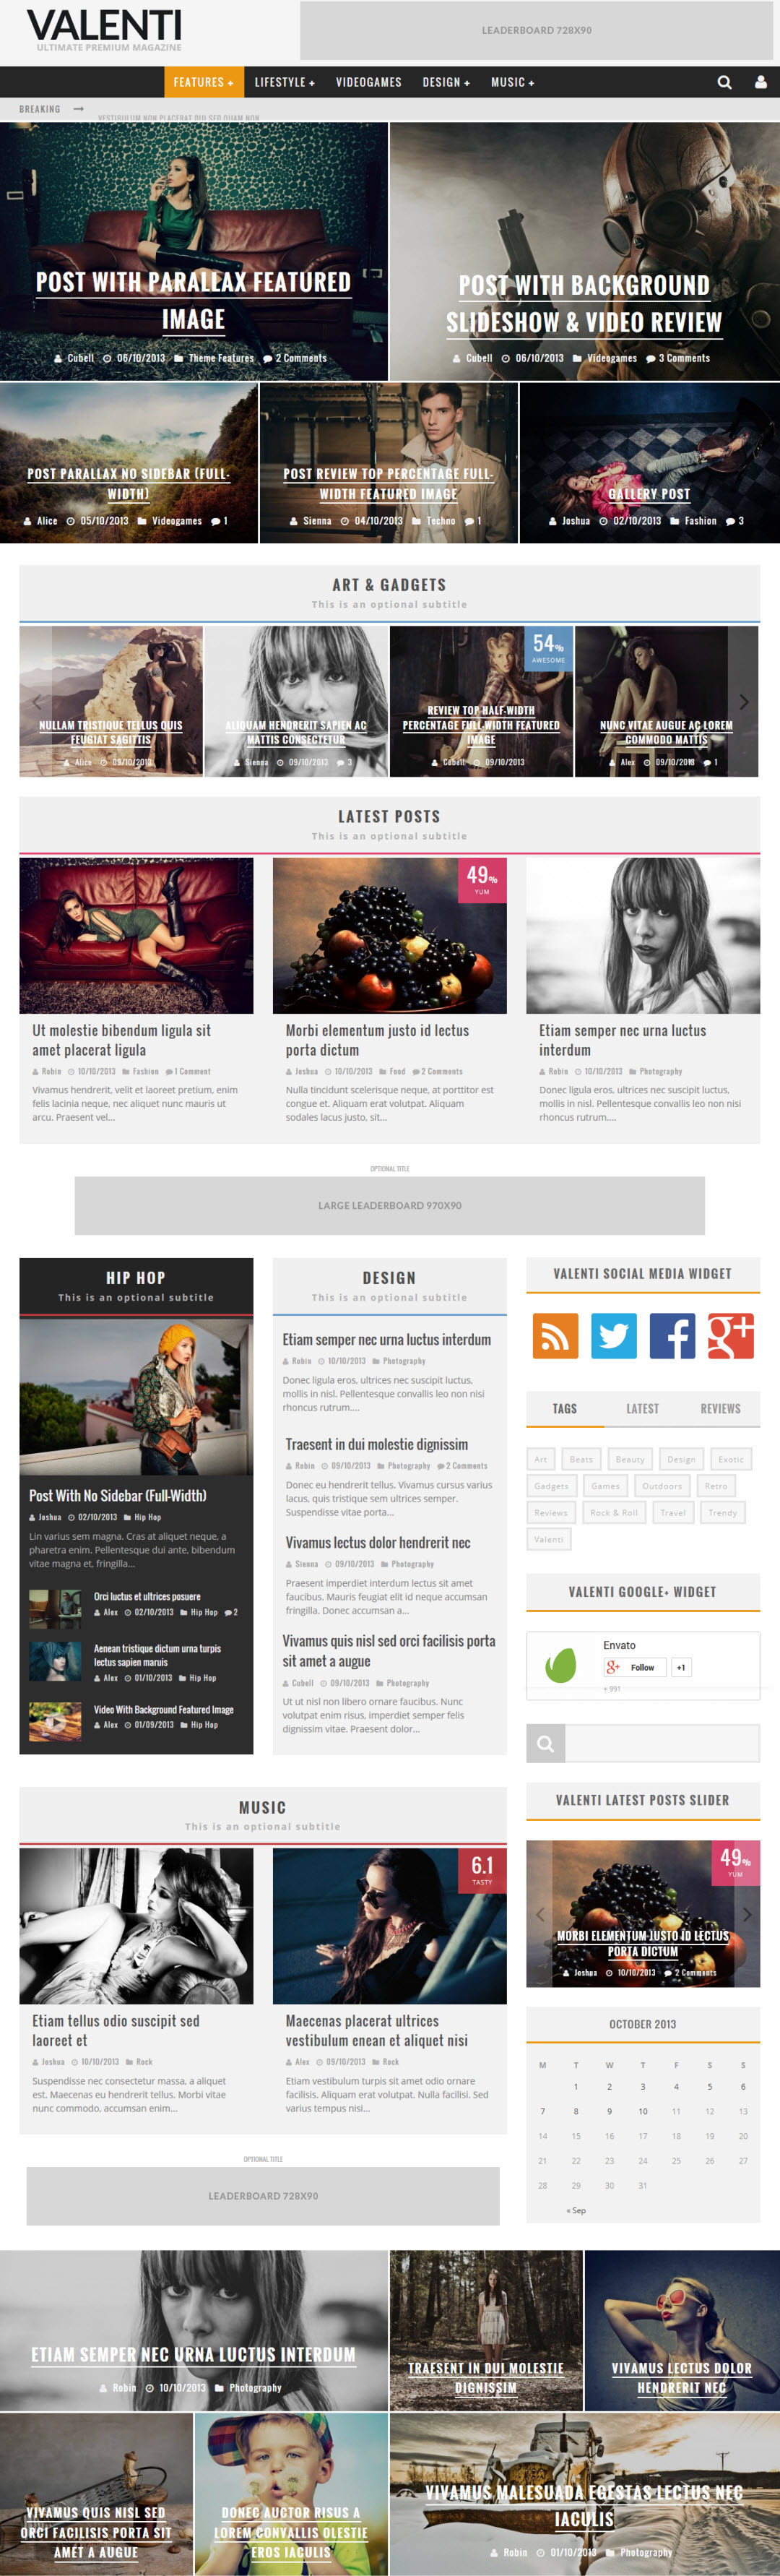 Valenti WordPress Theme Download